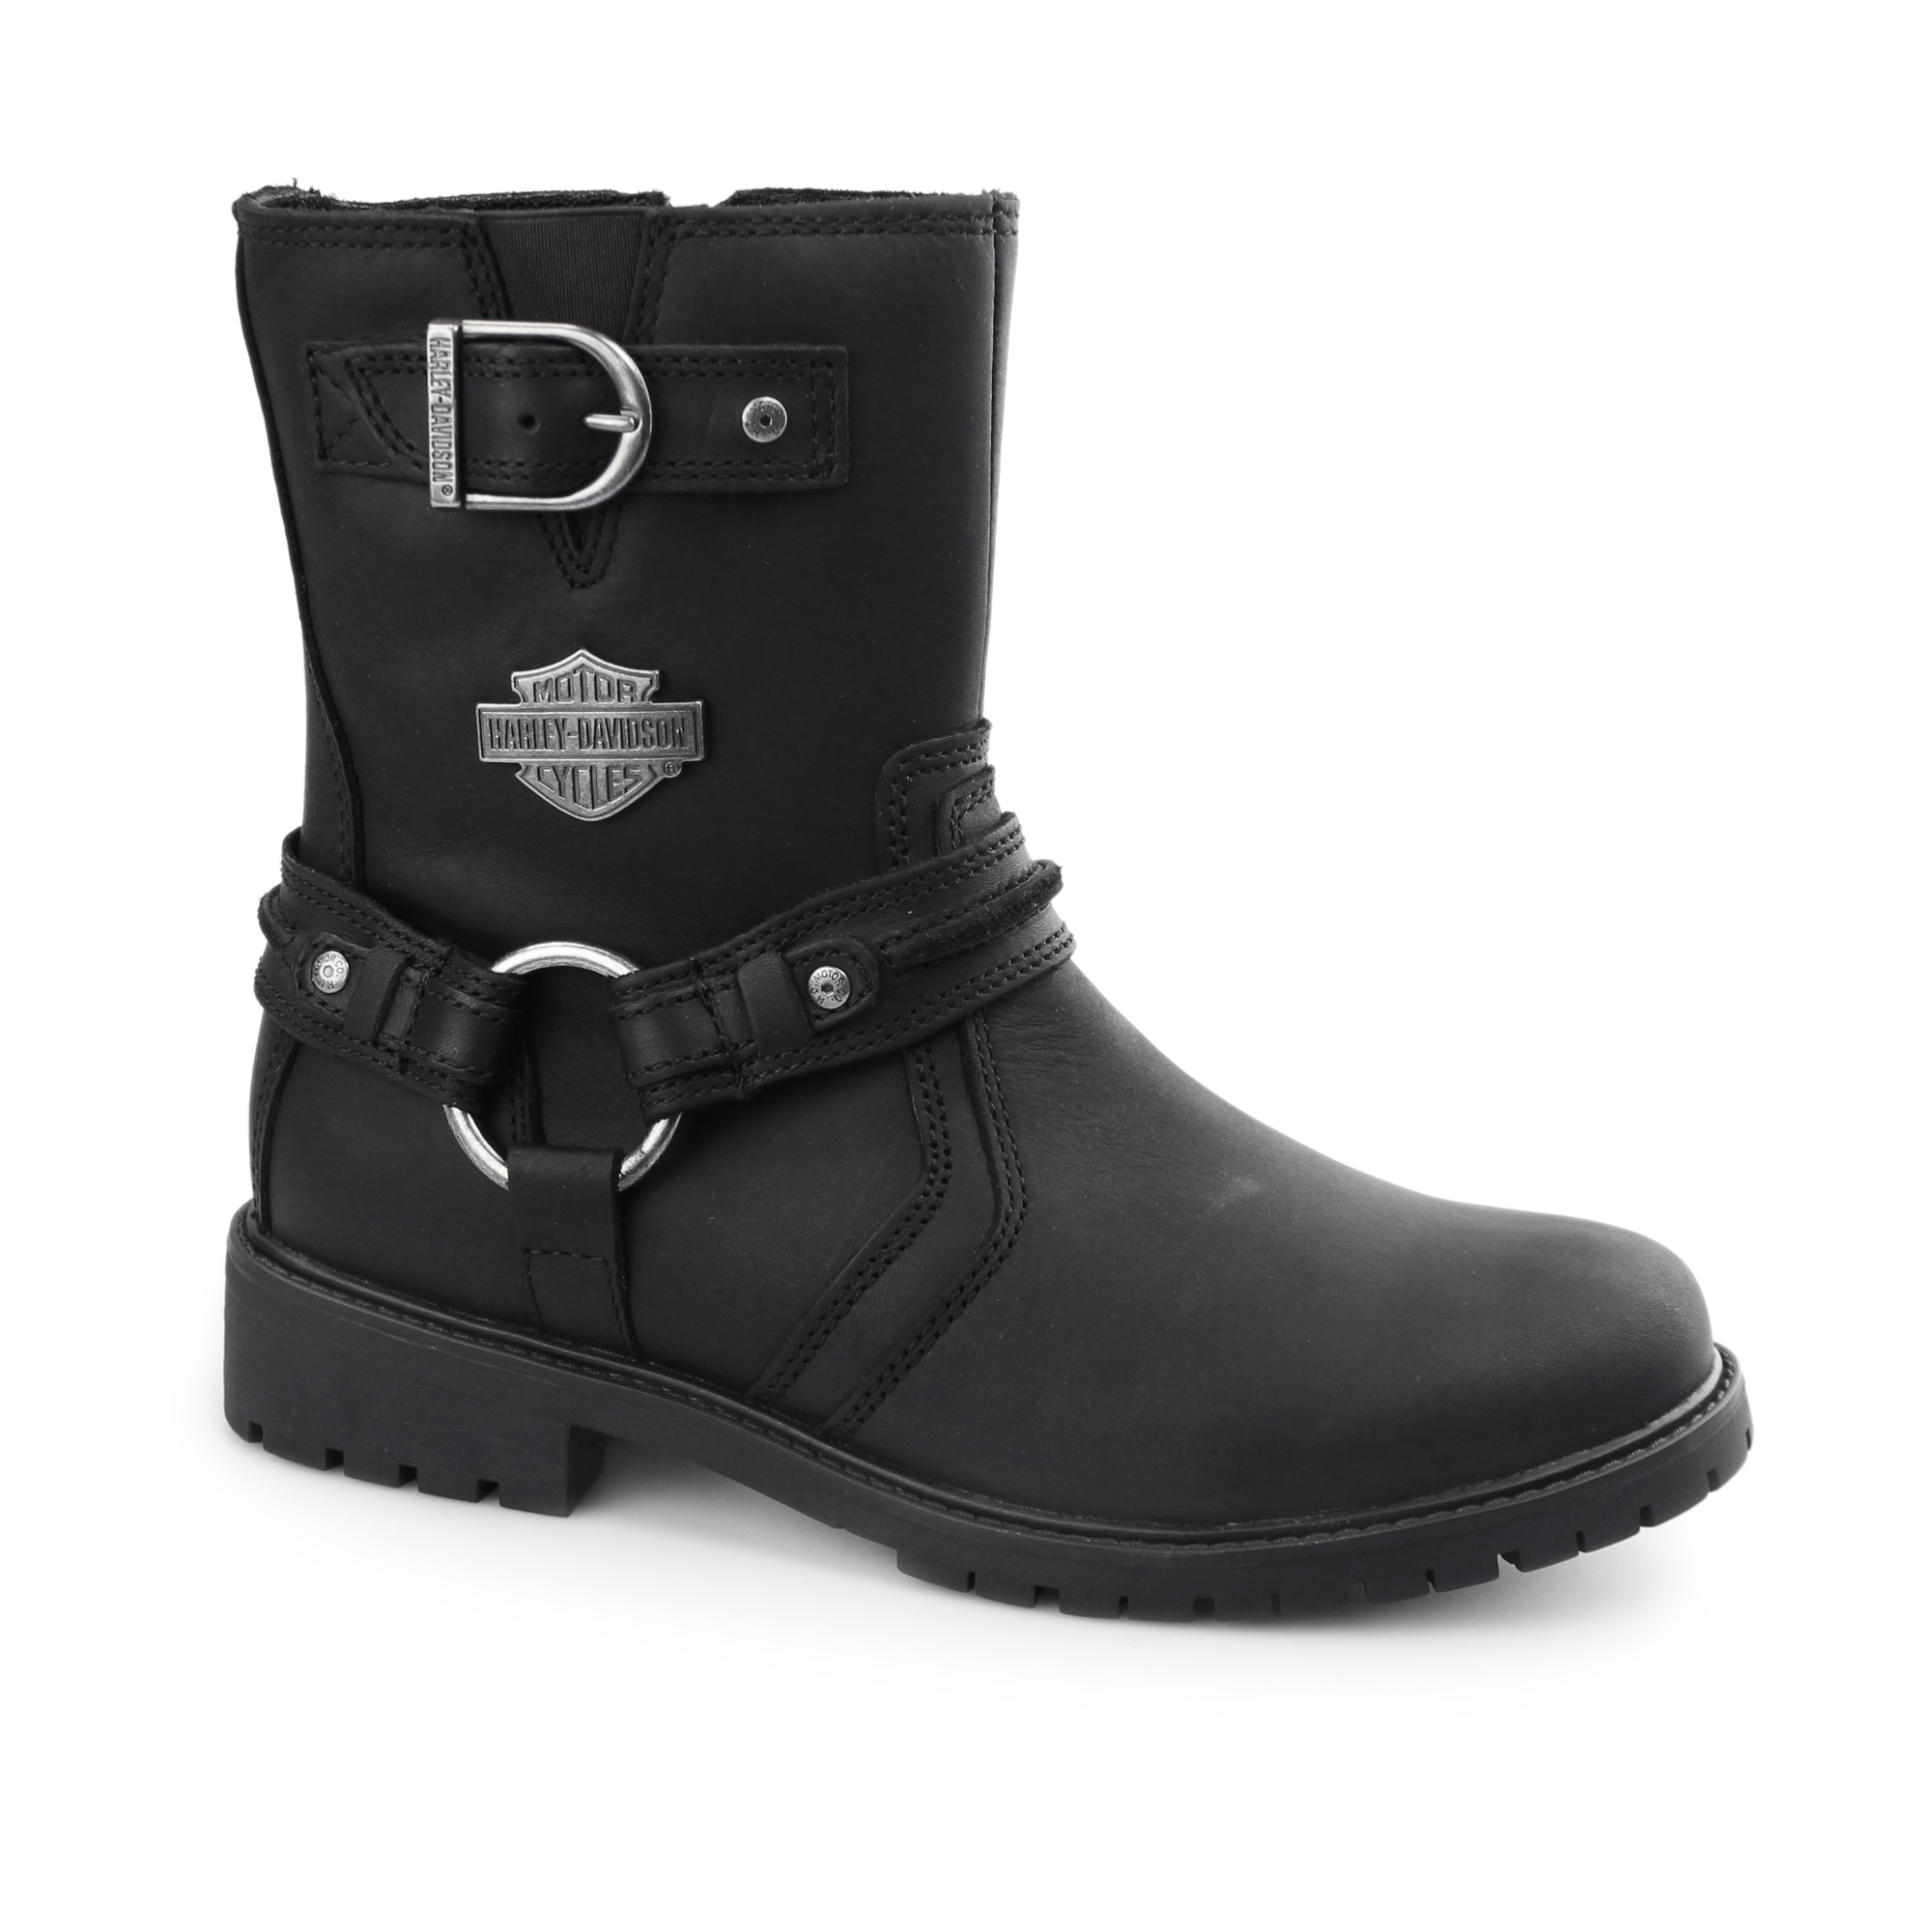 33cc45a54b5 Harley Davidson ABNER Mens Leather Zip Harness Boots Black